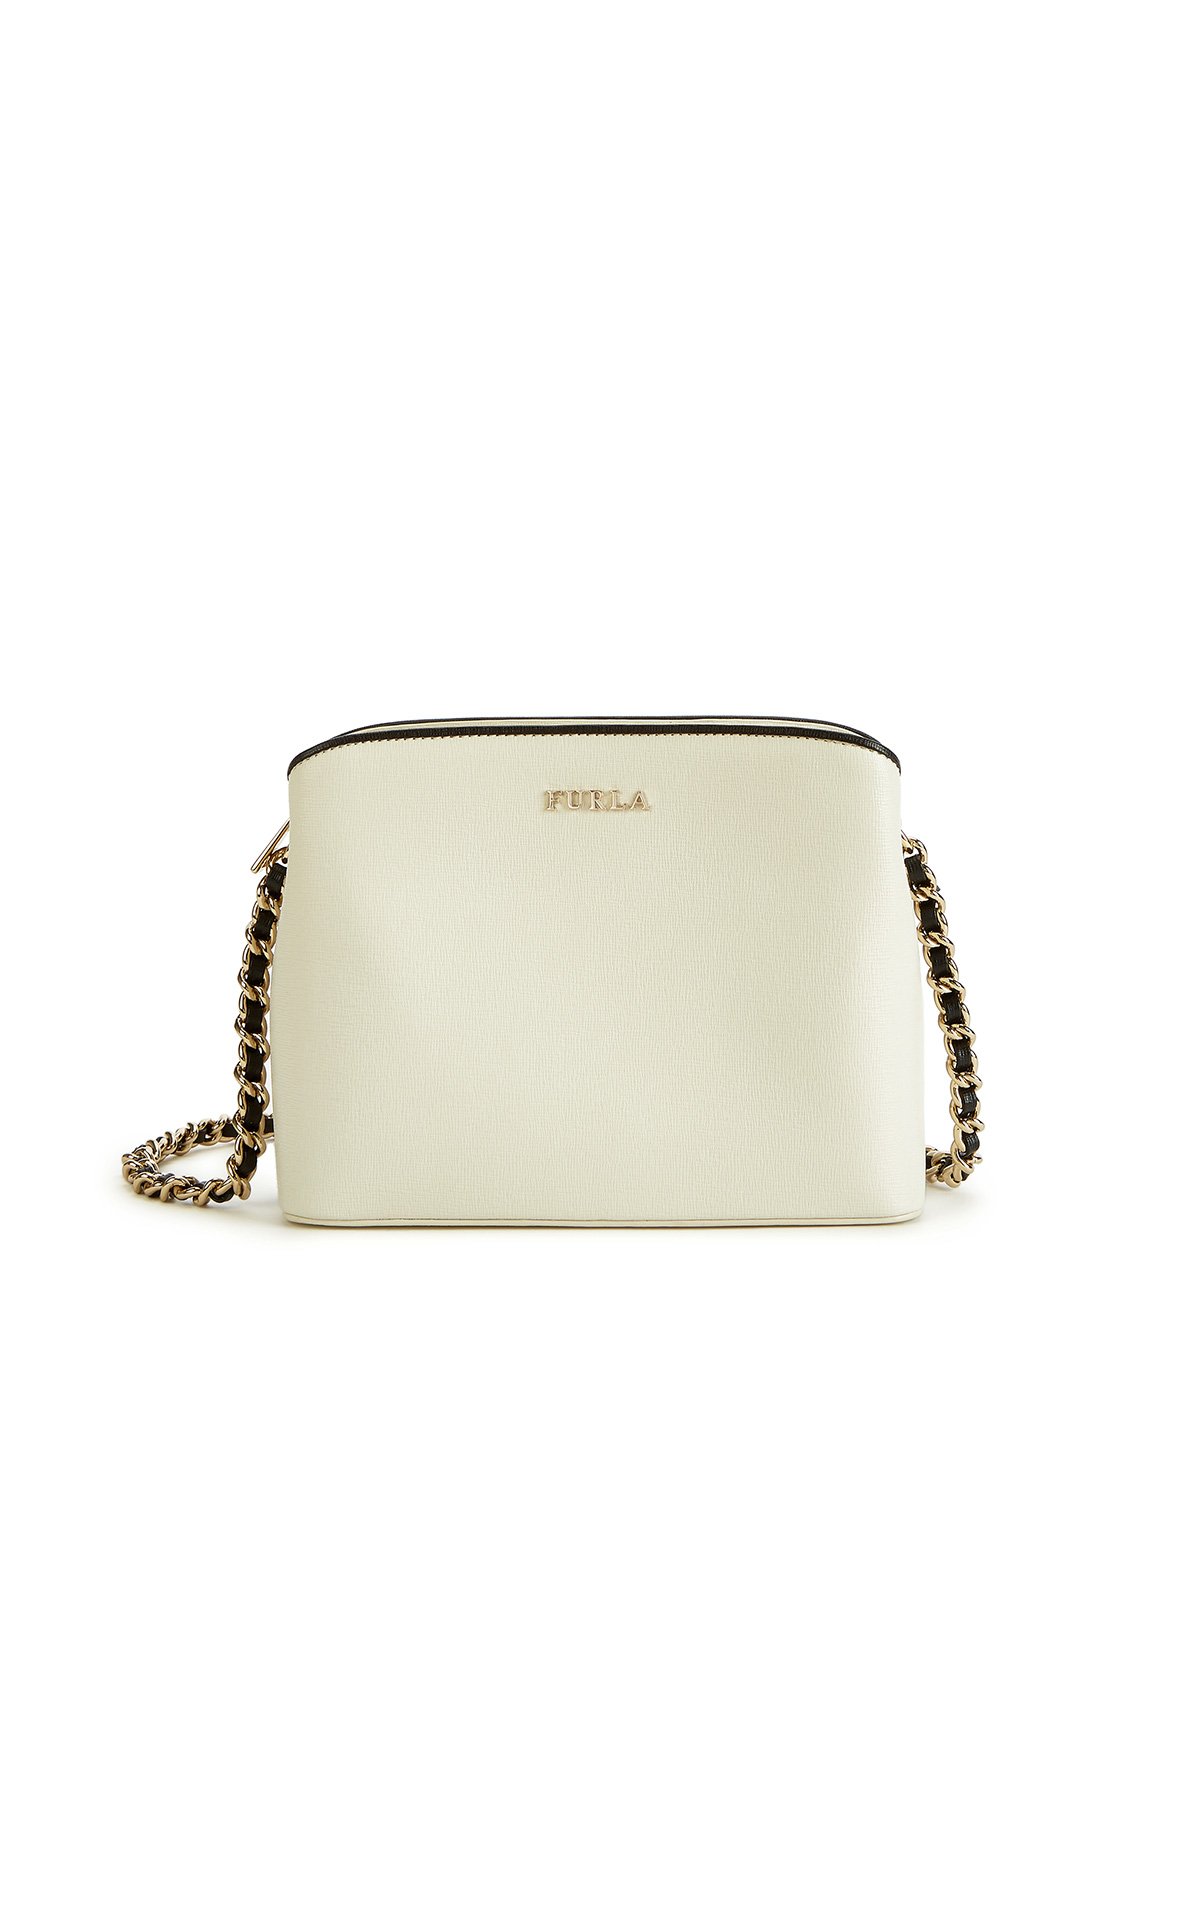 FURLA Tessa mini crossbody